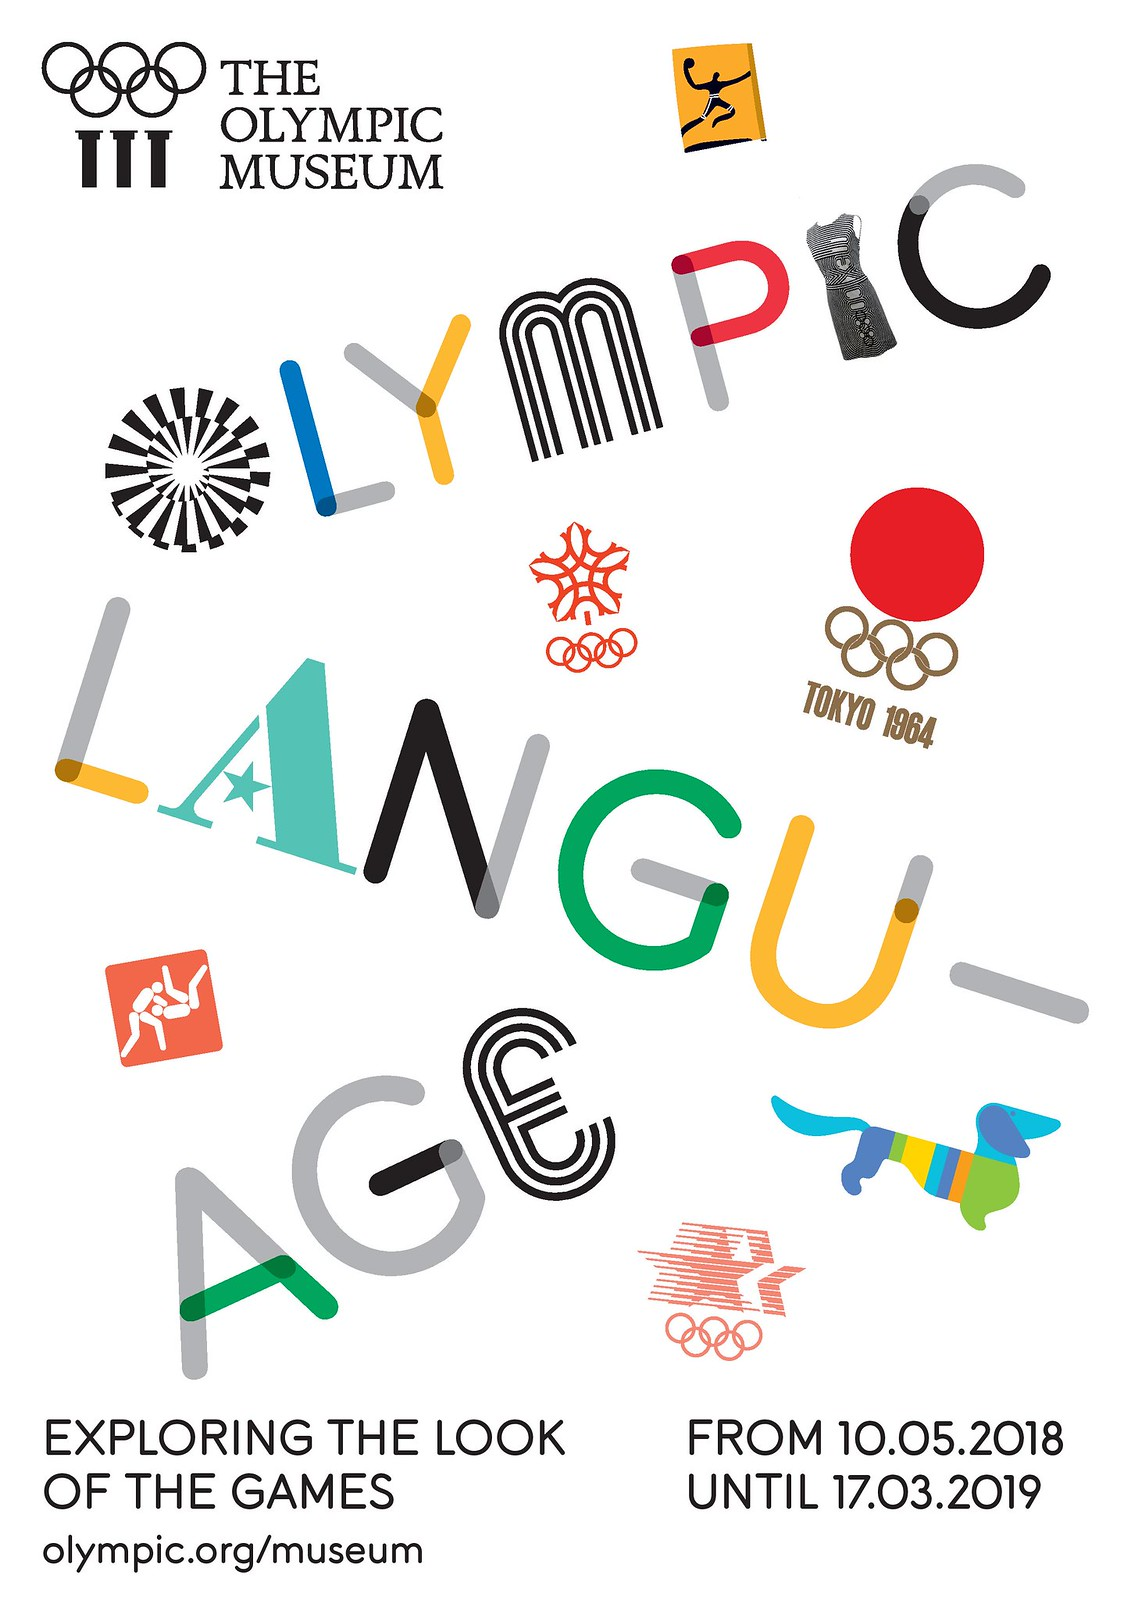 """ OLYMPIC LANGUAGE - exploring the Look of the Games"" from 10.05.2018 until 28.03.2019"